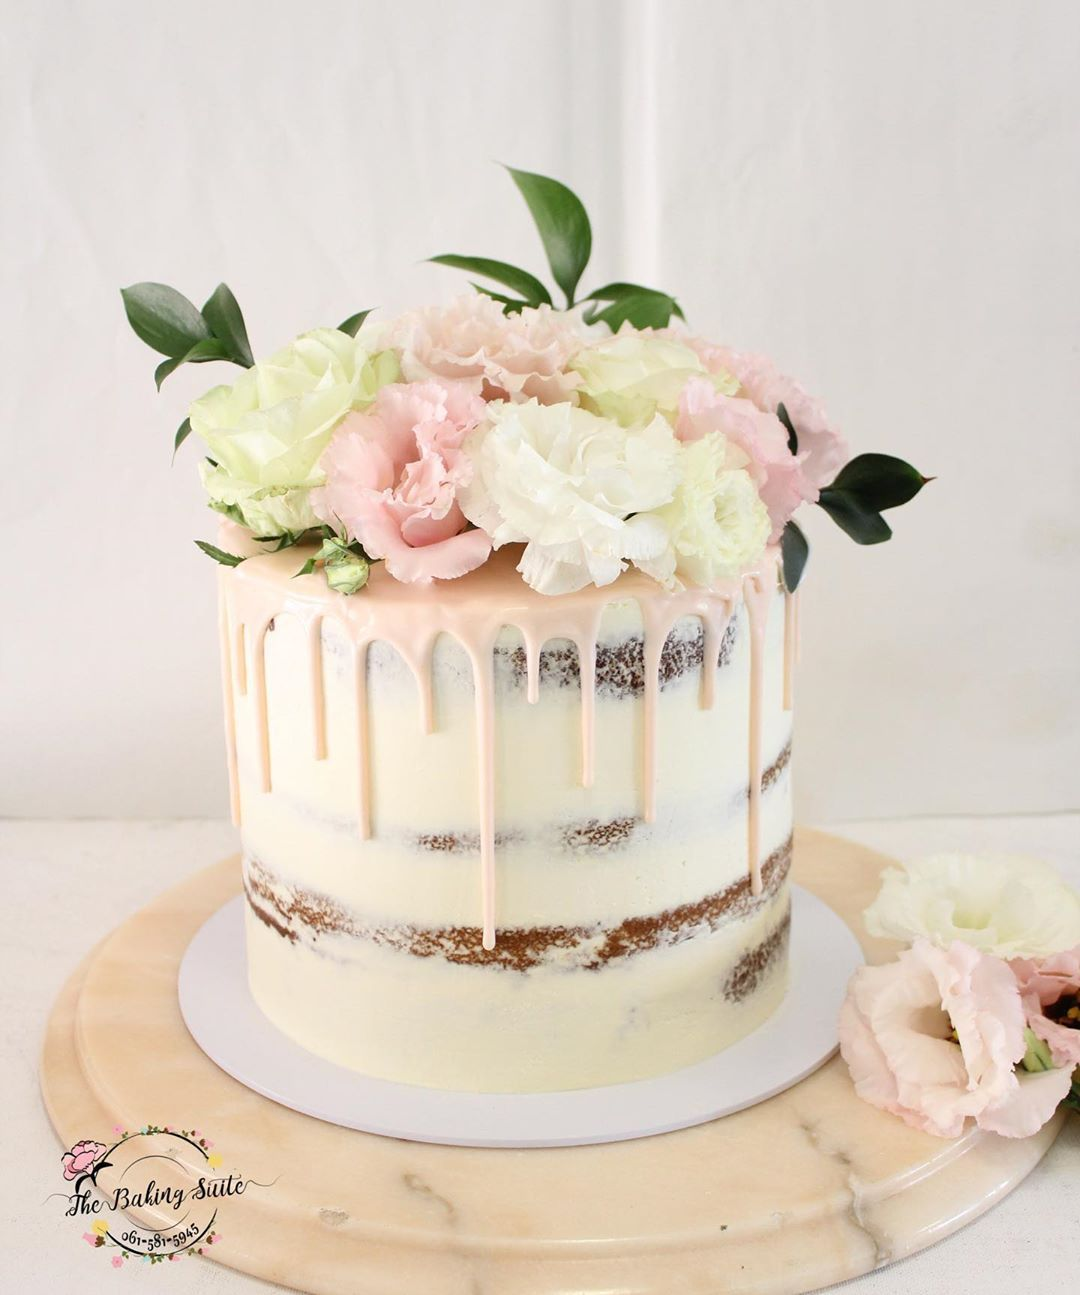 Soft Pink Baby Shower Cake Congratulations Kim the baby is